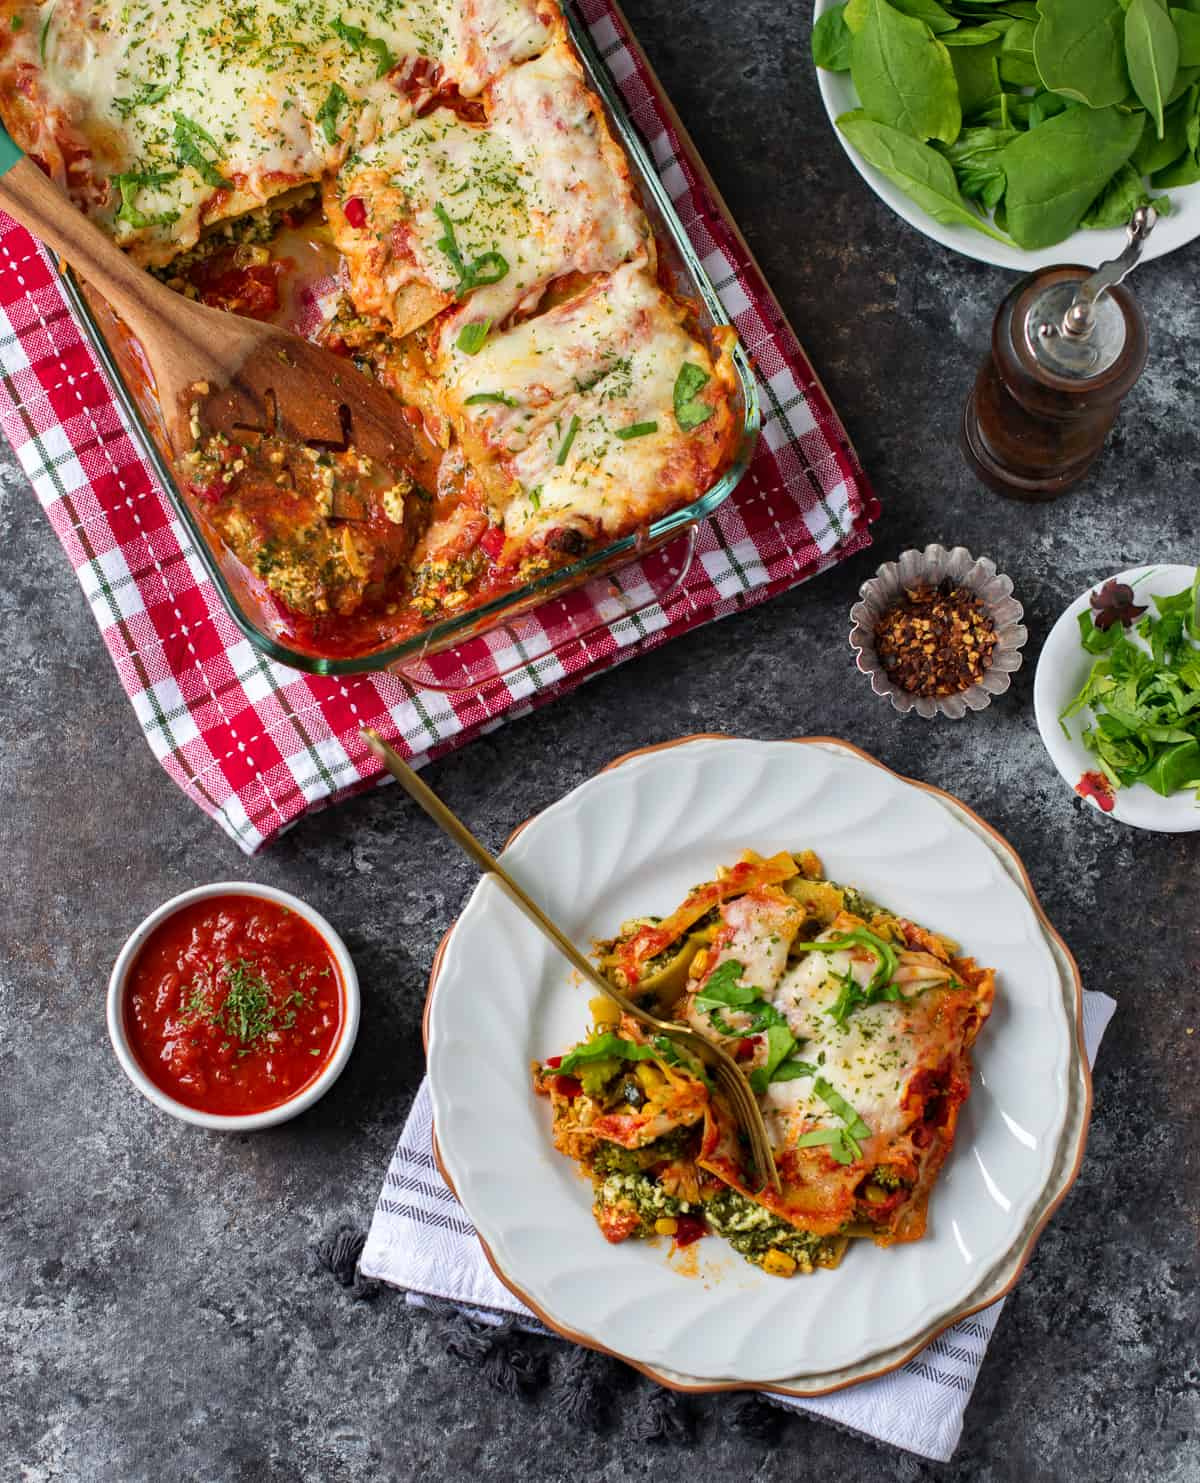 Veg lasagna served on a plate with some pasta sauce on the side